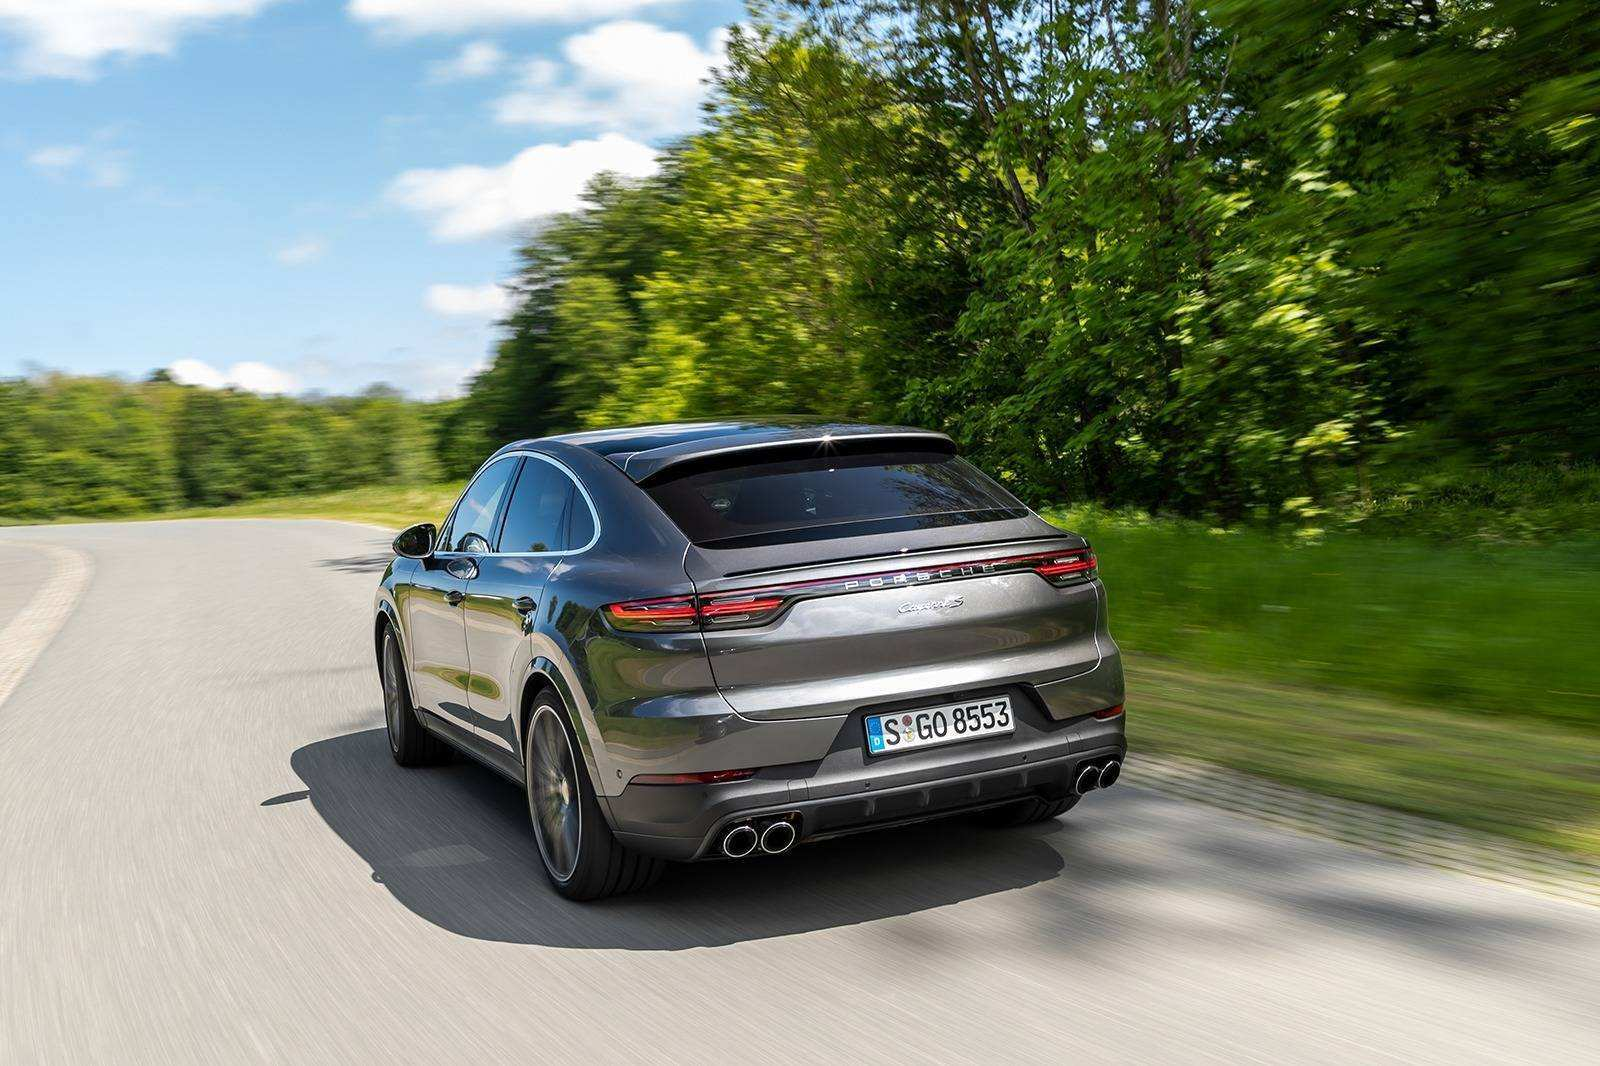 92 A 2020 Porsche Cayenne Turbo S Price And Review